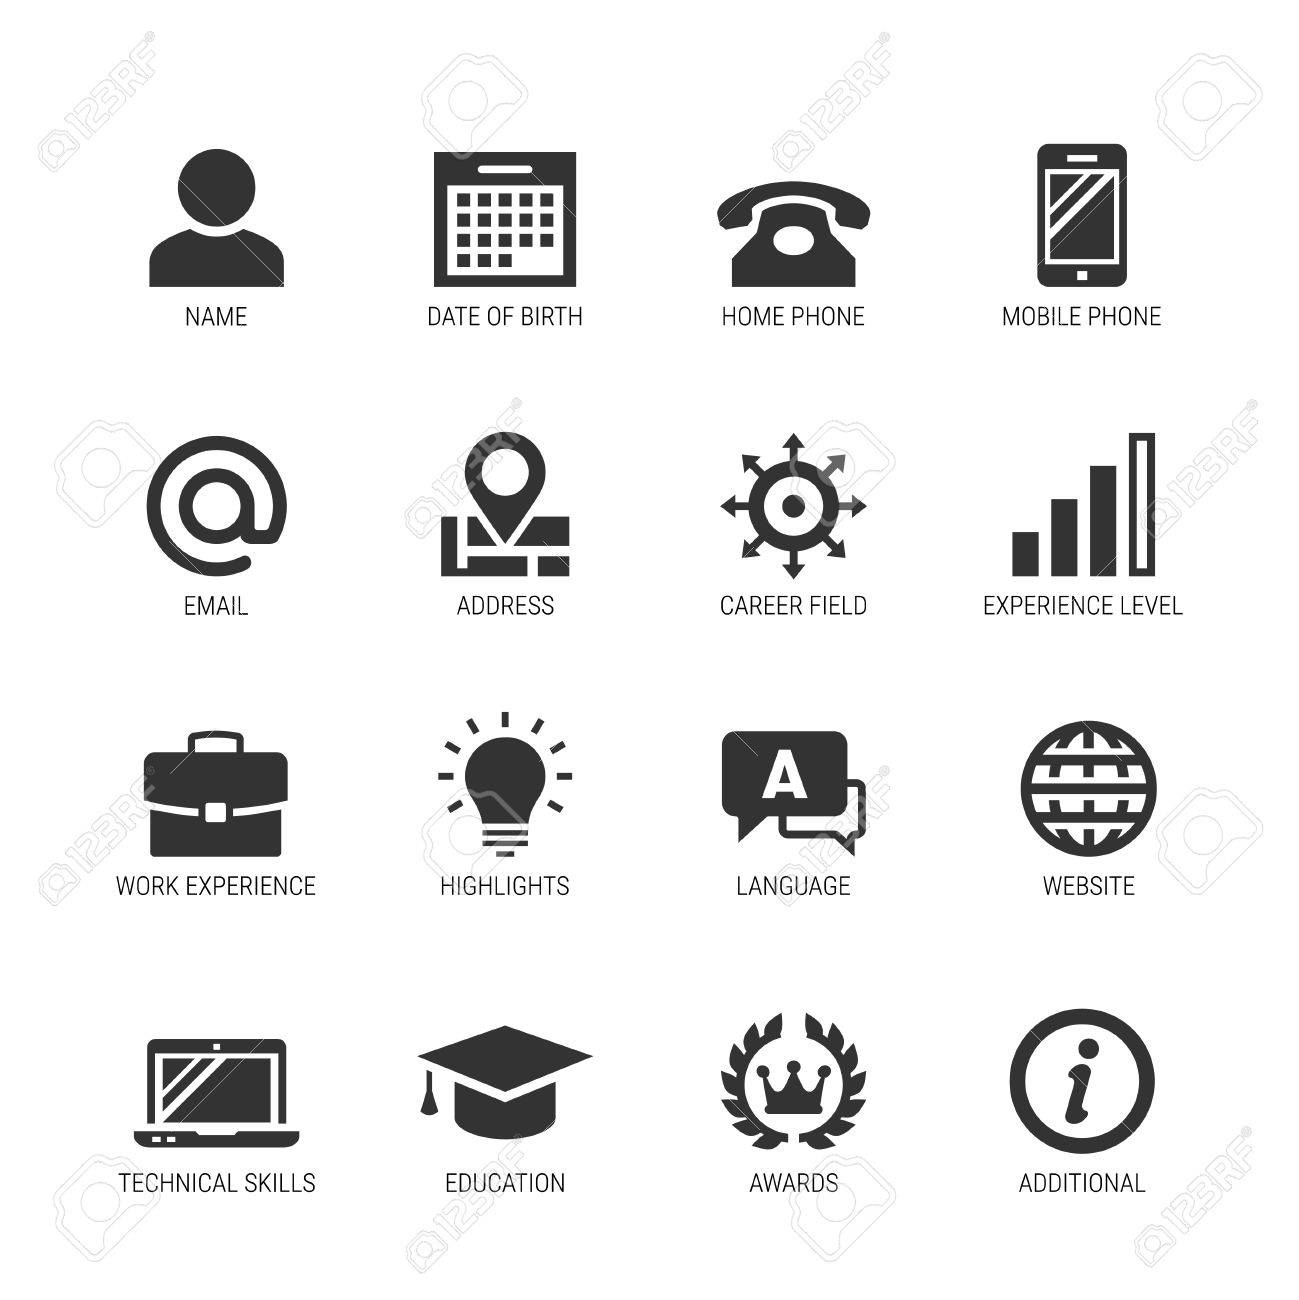 Resume clipart icons clip art royalty free stock Resume clipart education icon - 147 transparent clip arts ... clip art royalty free stock